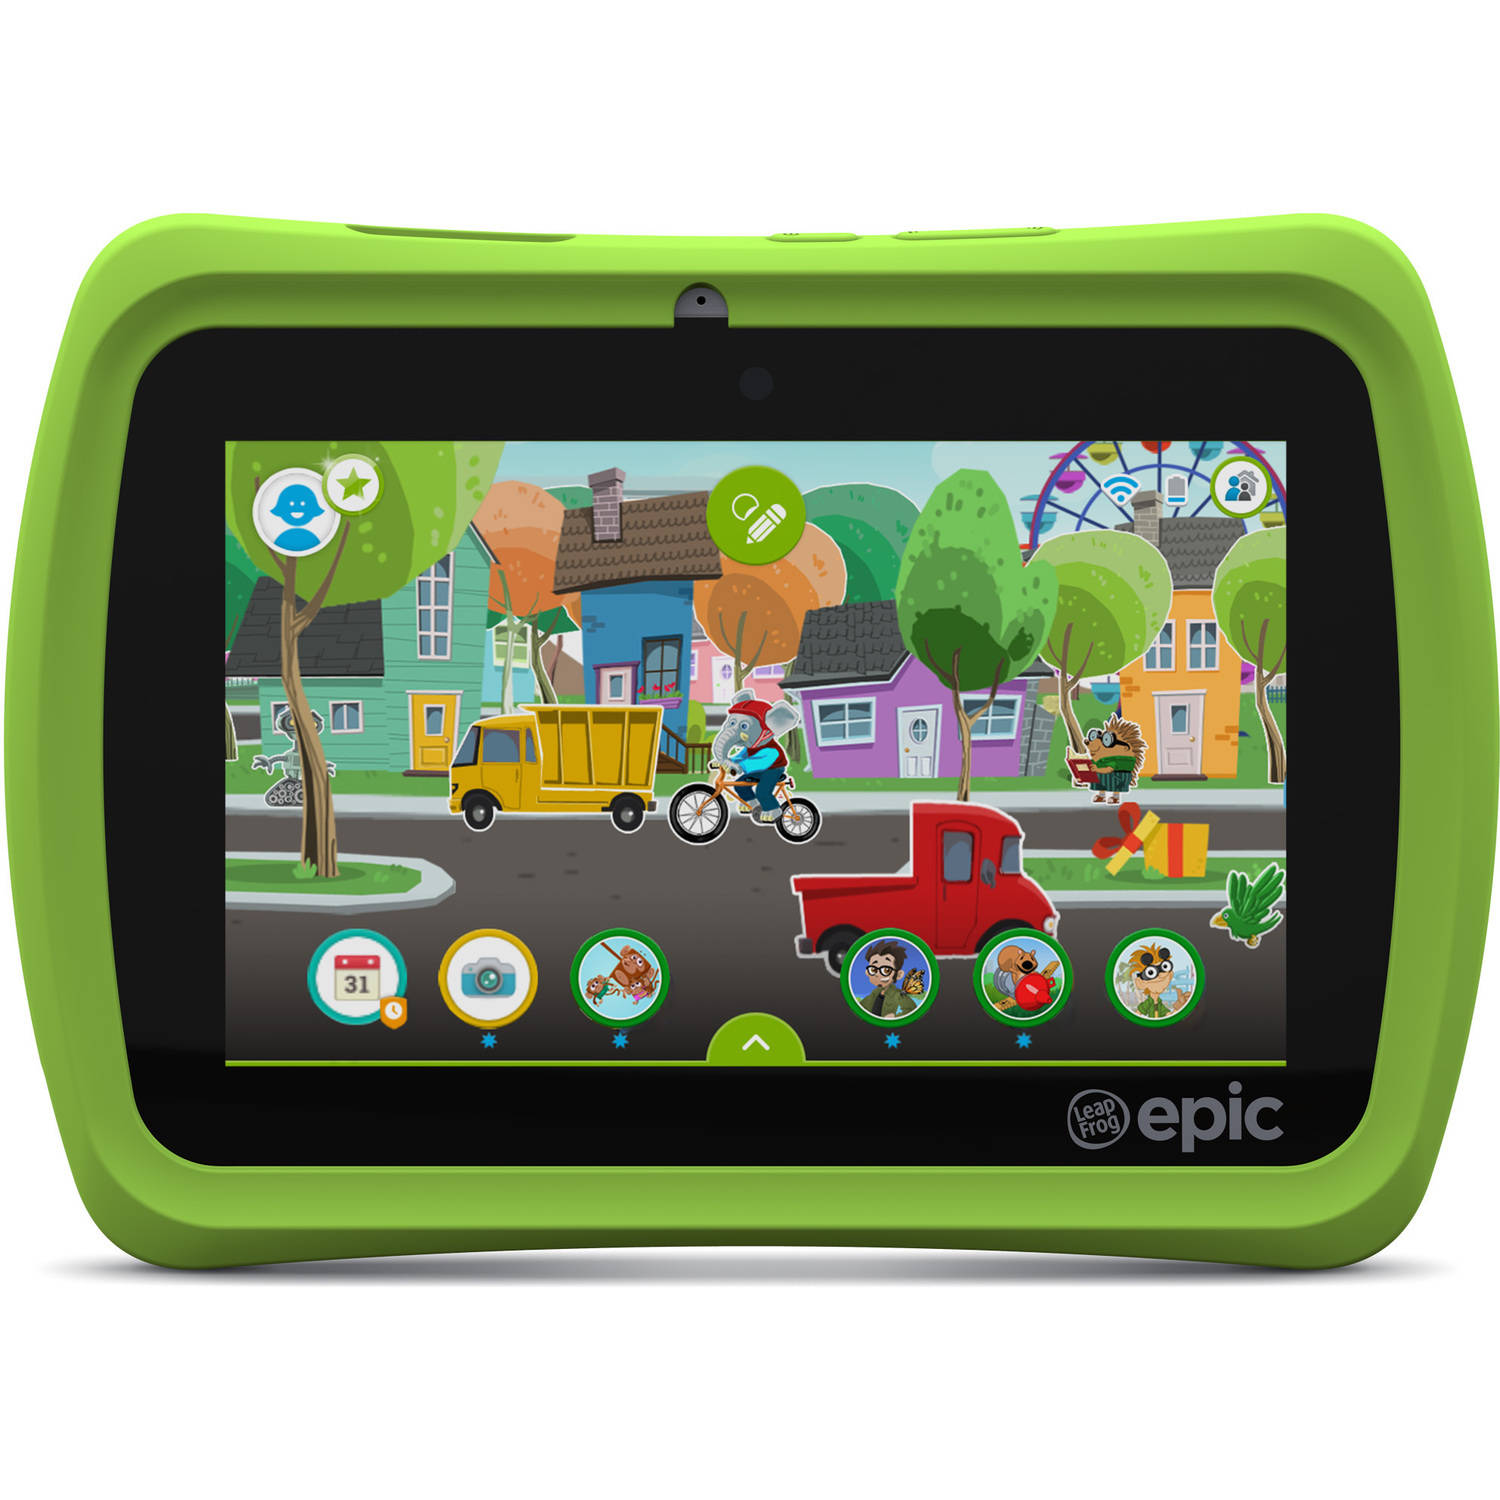 "LeapFrog Epic 7"" Android-based Kids Tablet 16GB"